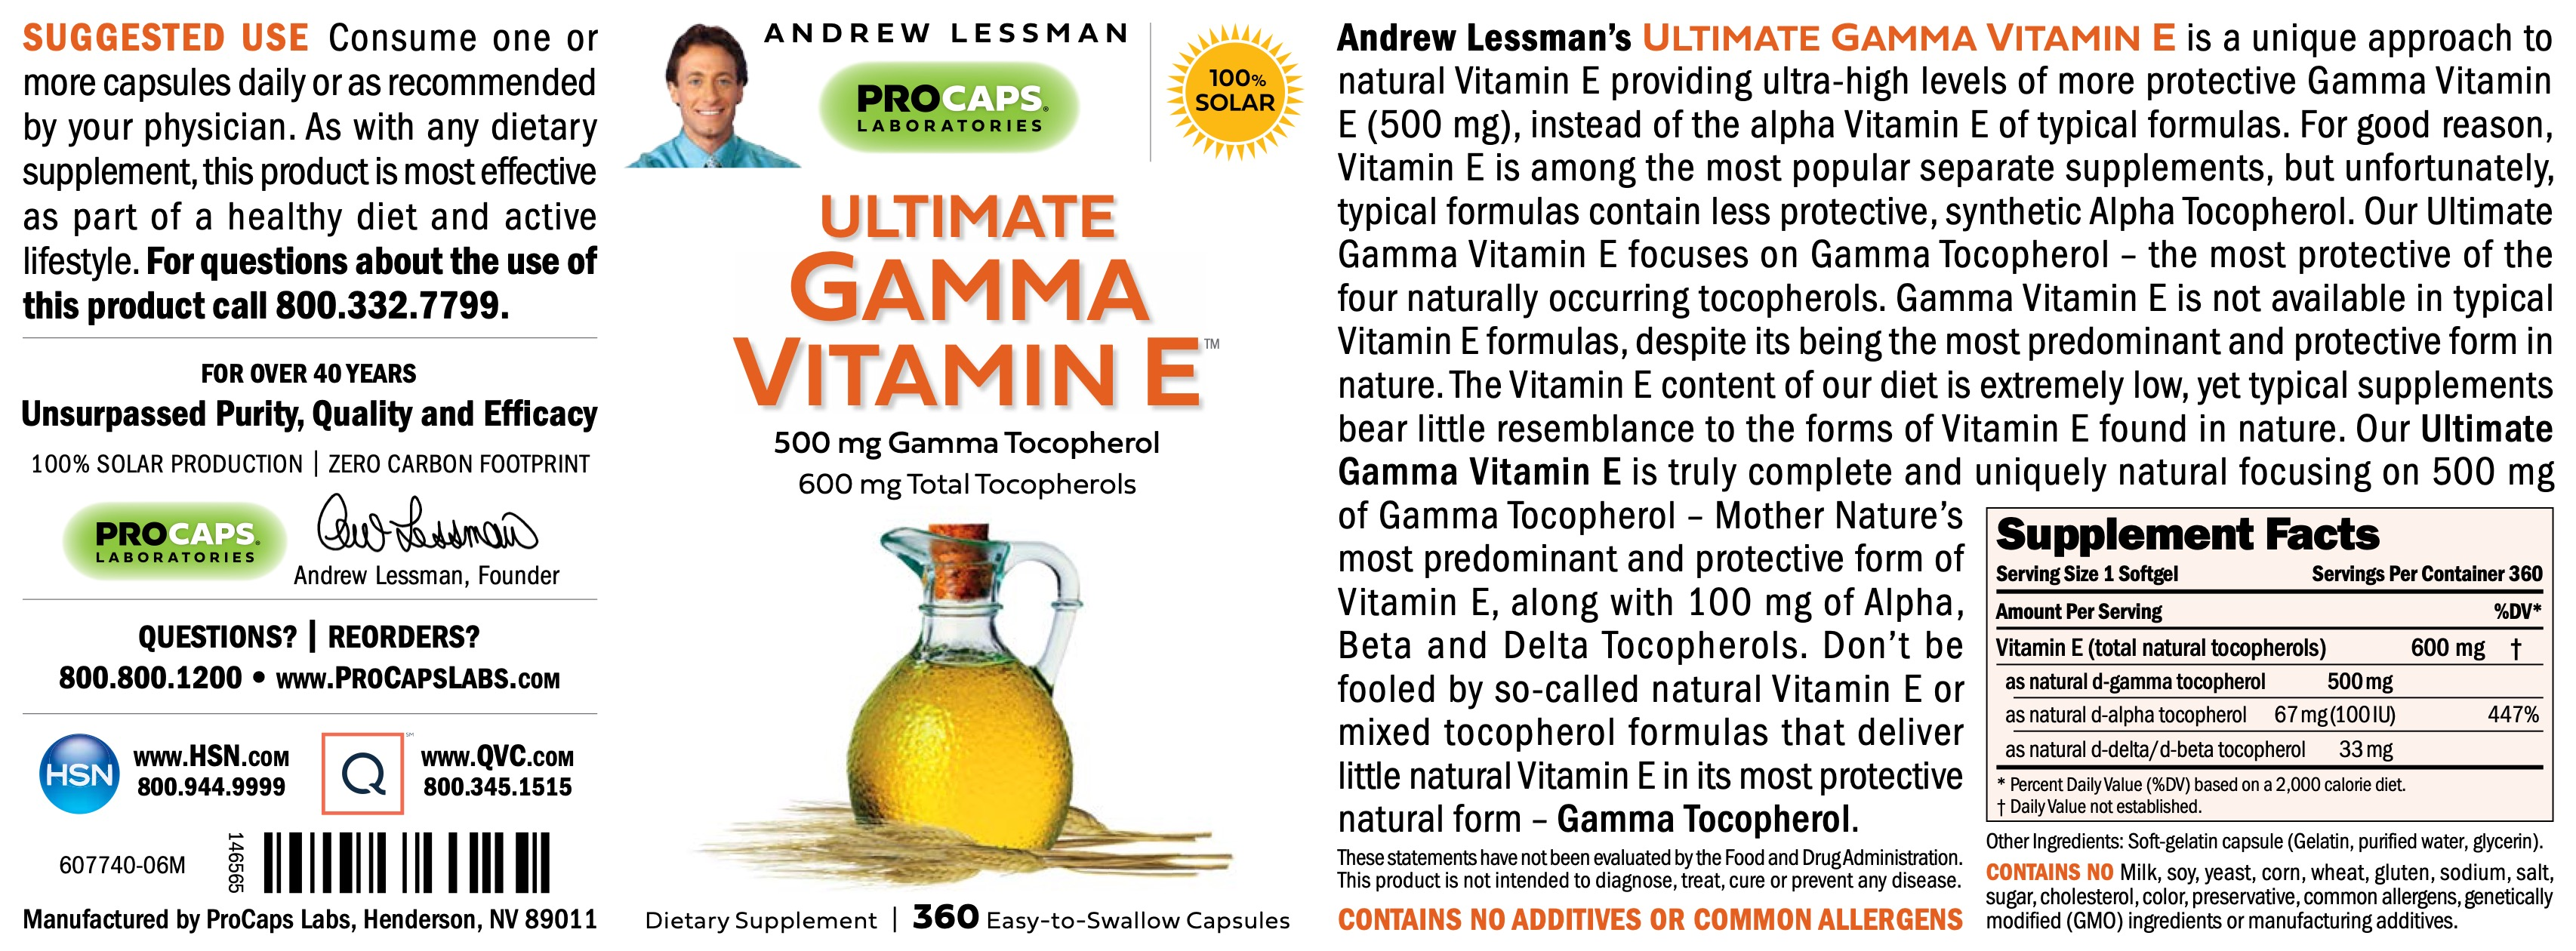 Ultimate-Gamma-Vitamin-E